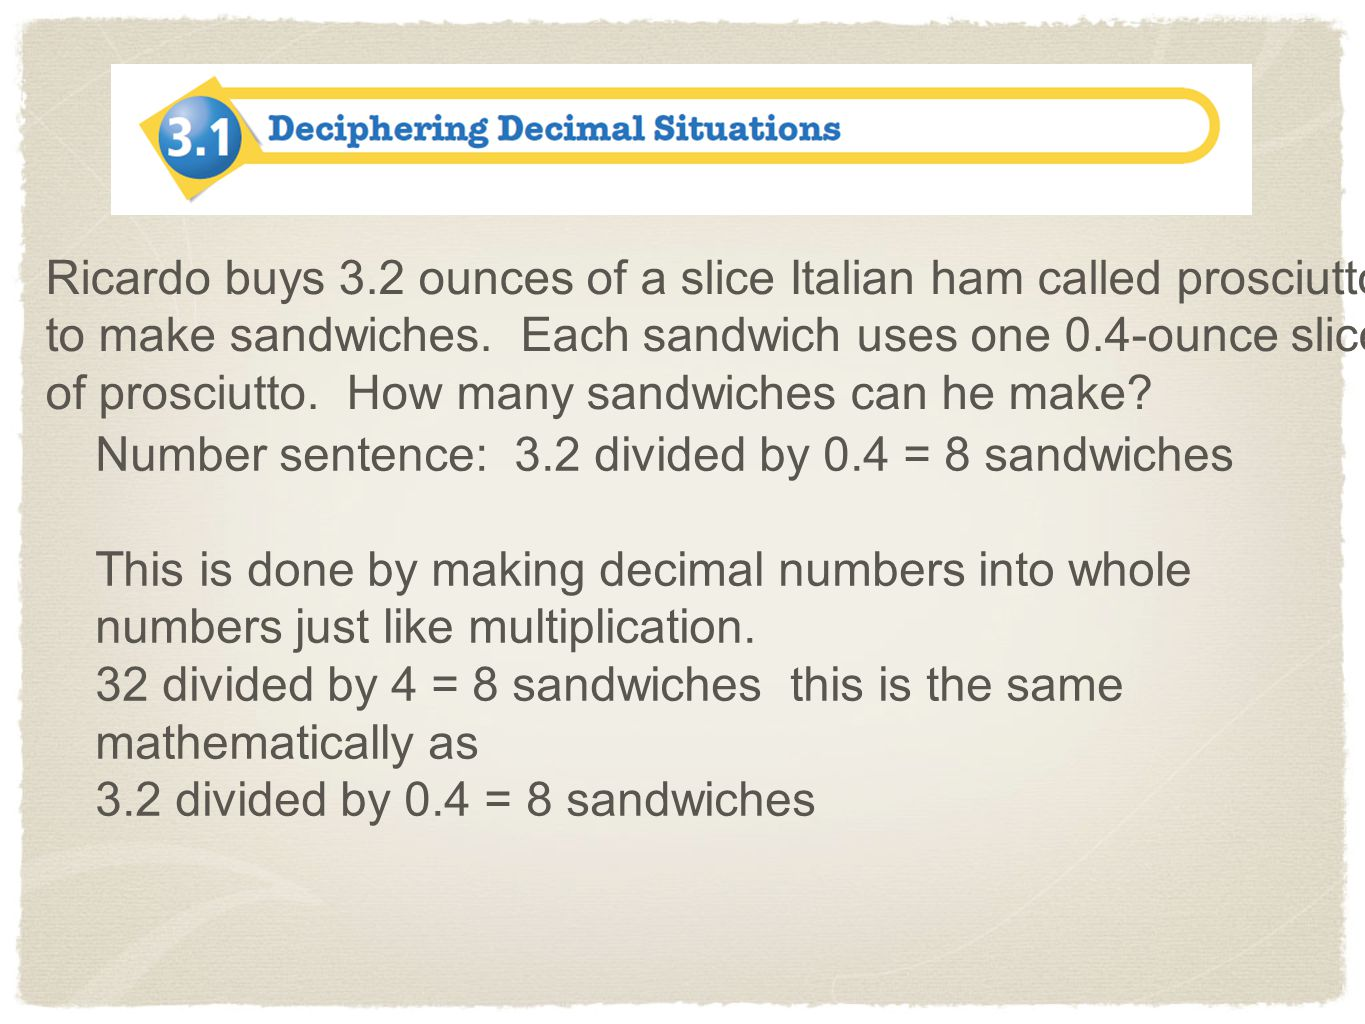 Ricardo buys 3.2 ounces of a slice Italian ham called prosciutto to make sandwiches. Each sandwich uses one 0.4-ounce slice of prosciutto. How many sandwiches can he make